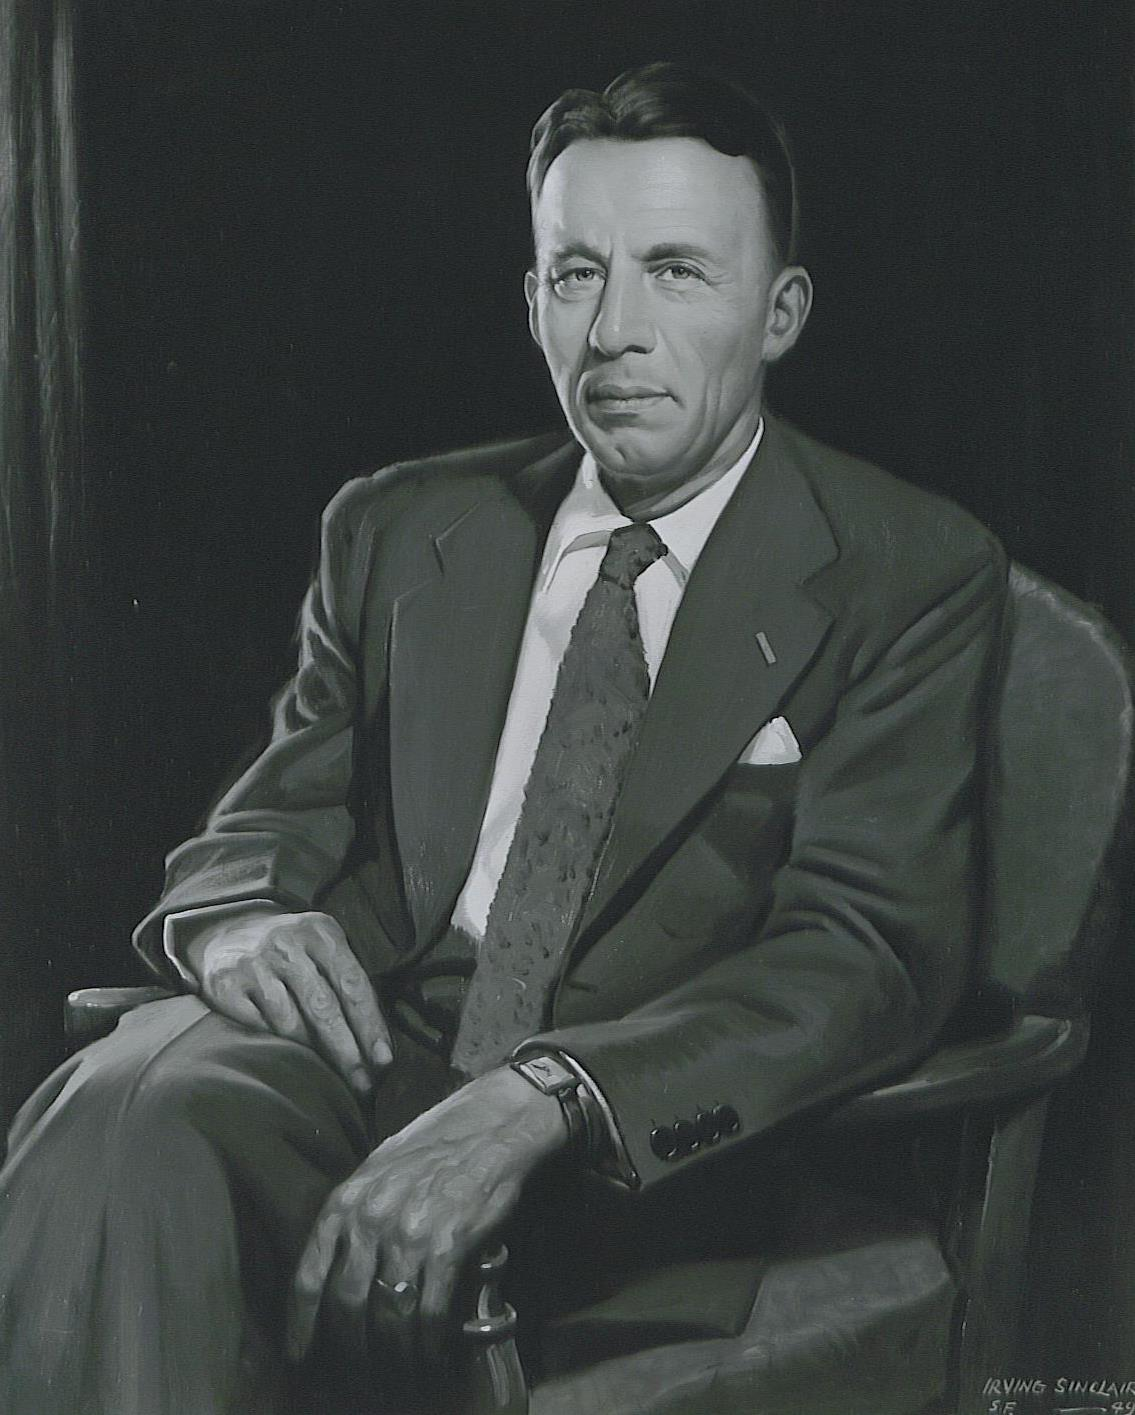 Harry-Cain-Irving-Sinclair-Portrait1